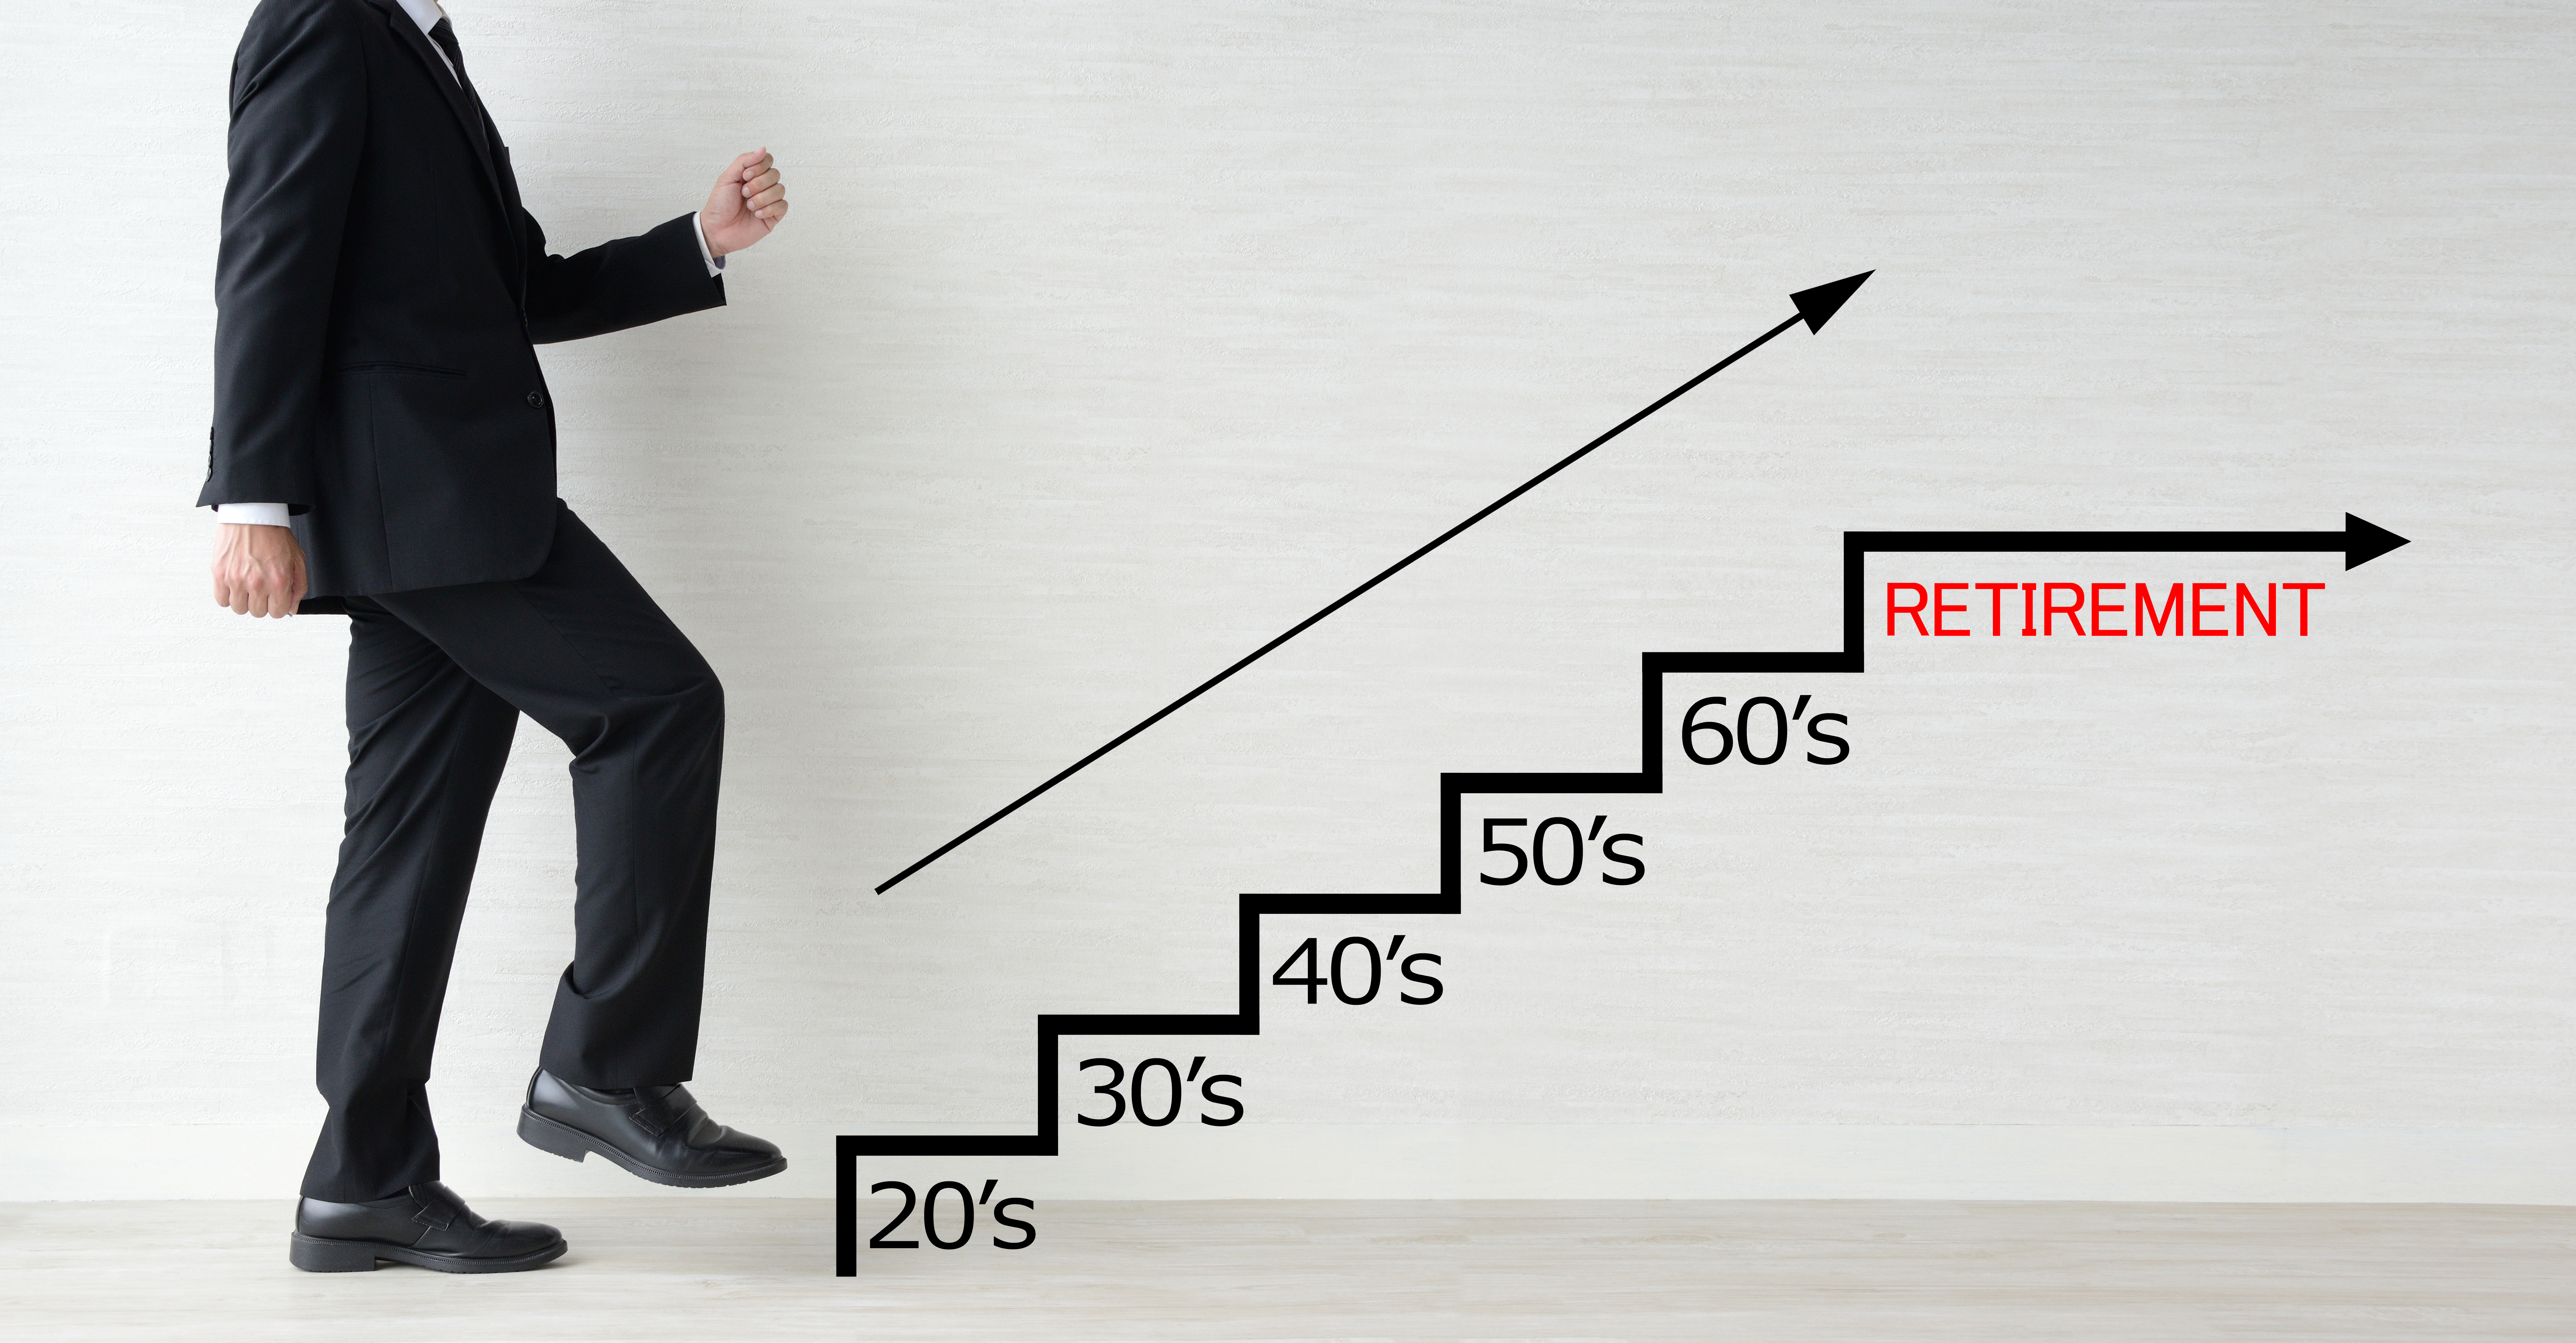 9 Tips to Build and Manage Your 401(k) Account